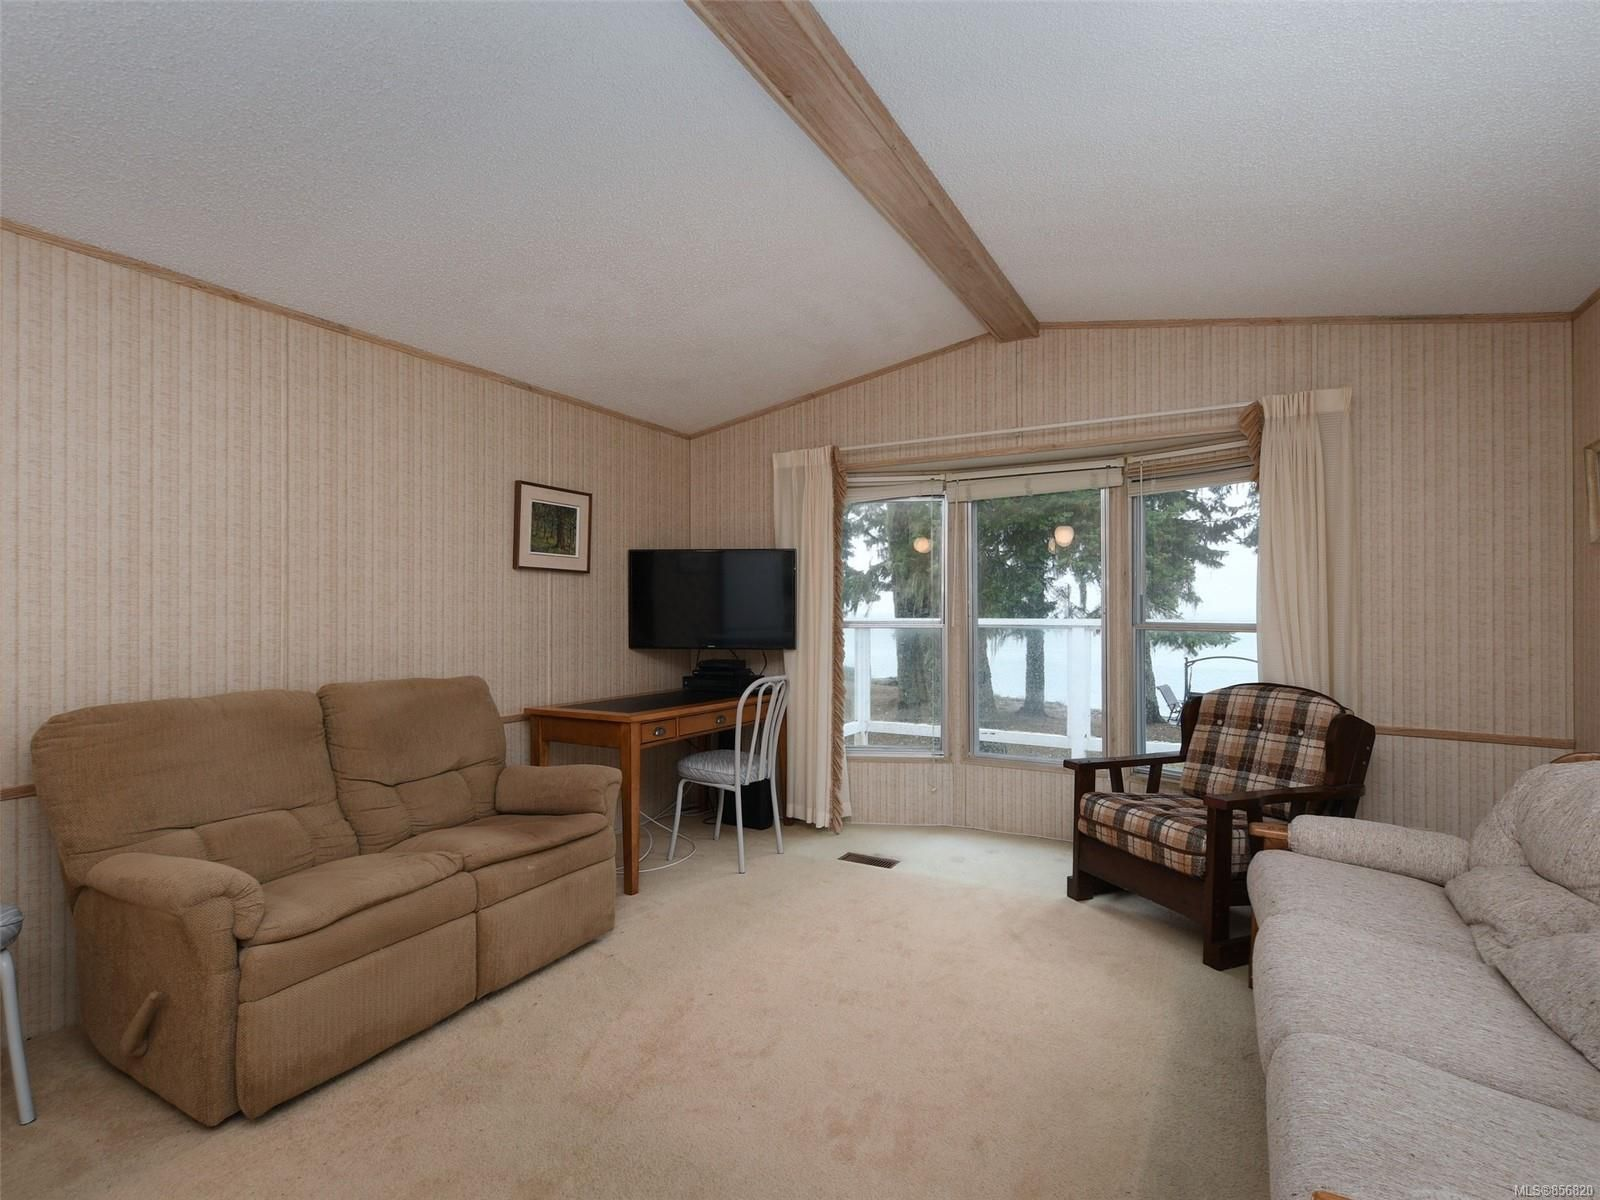 Photo 2: Photos: 25 7871 West Coast Rd in : Sk Kemp Lake Manufactured Home for sale (Sooke)  : MLS®# 856820